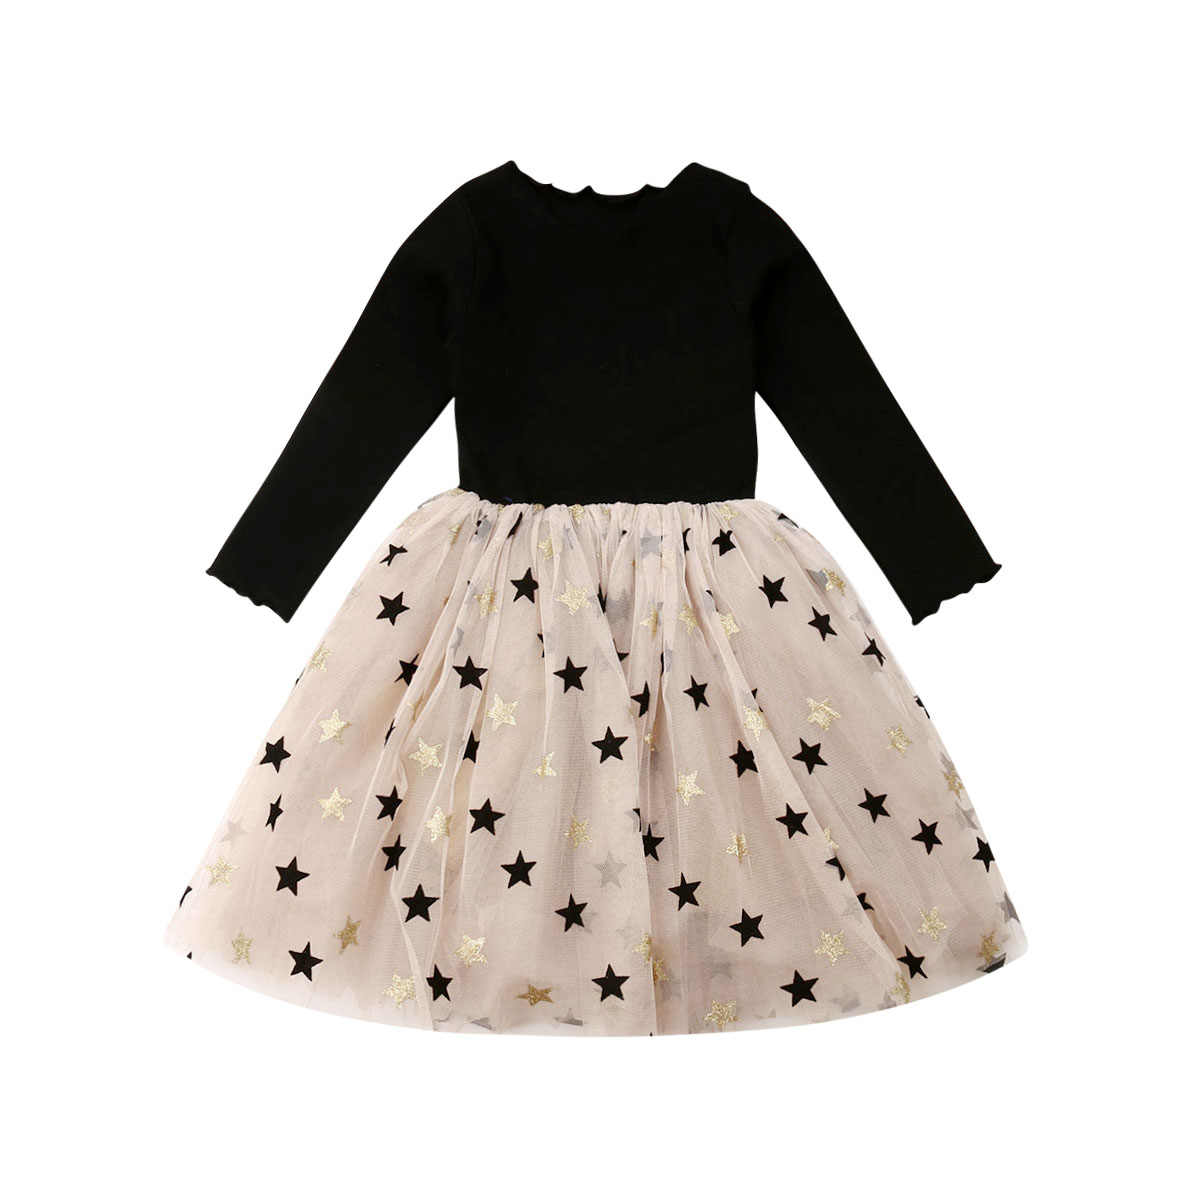 2019 Princess Autumn Infant Baby Girls Dress 2-7Y Star Print Lace Patchwork Knee Length Tutu Dress Party